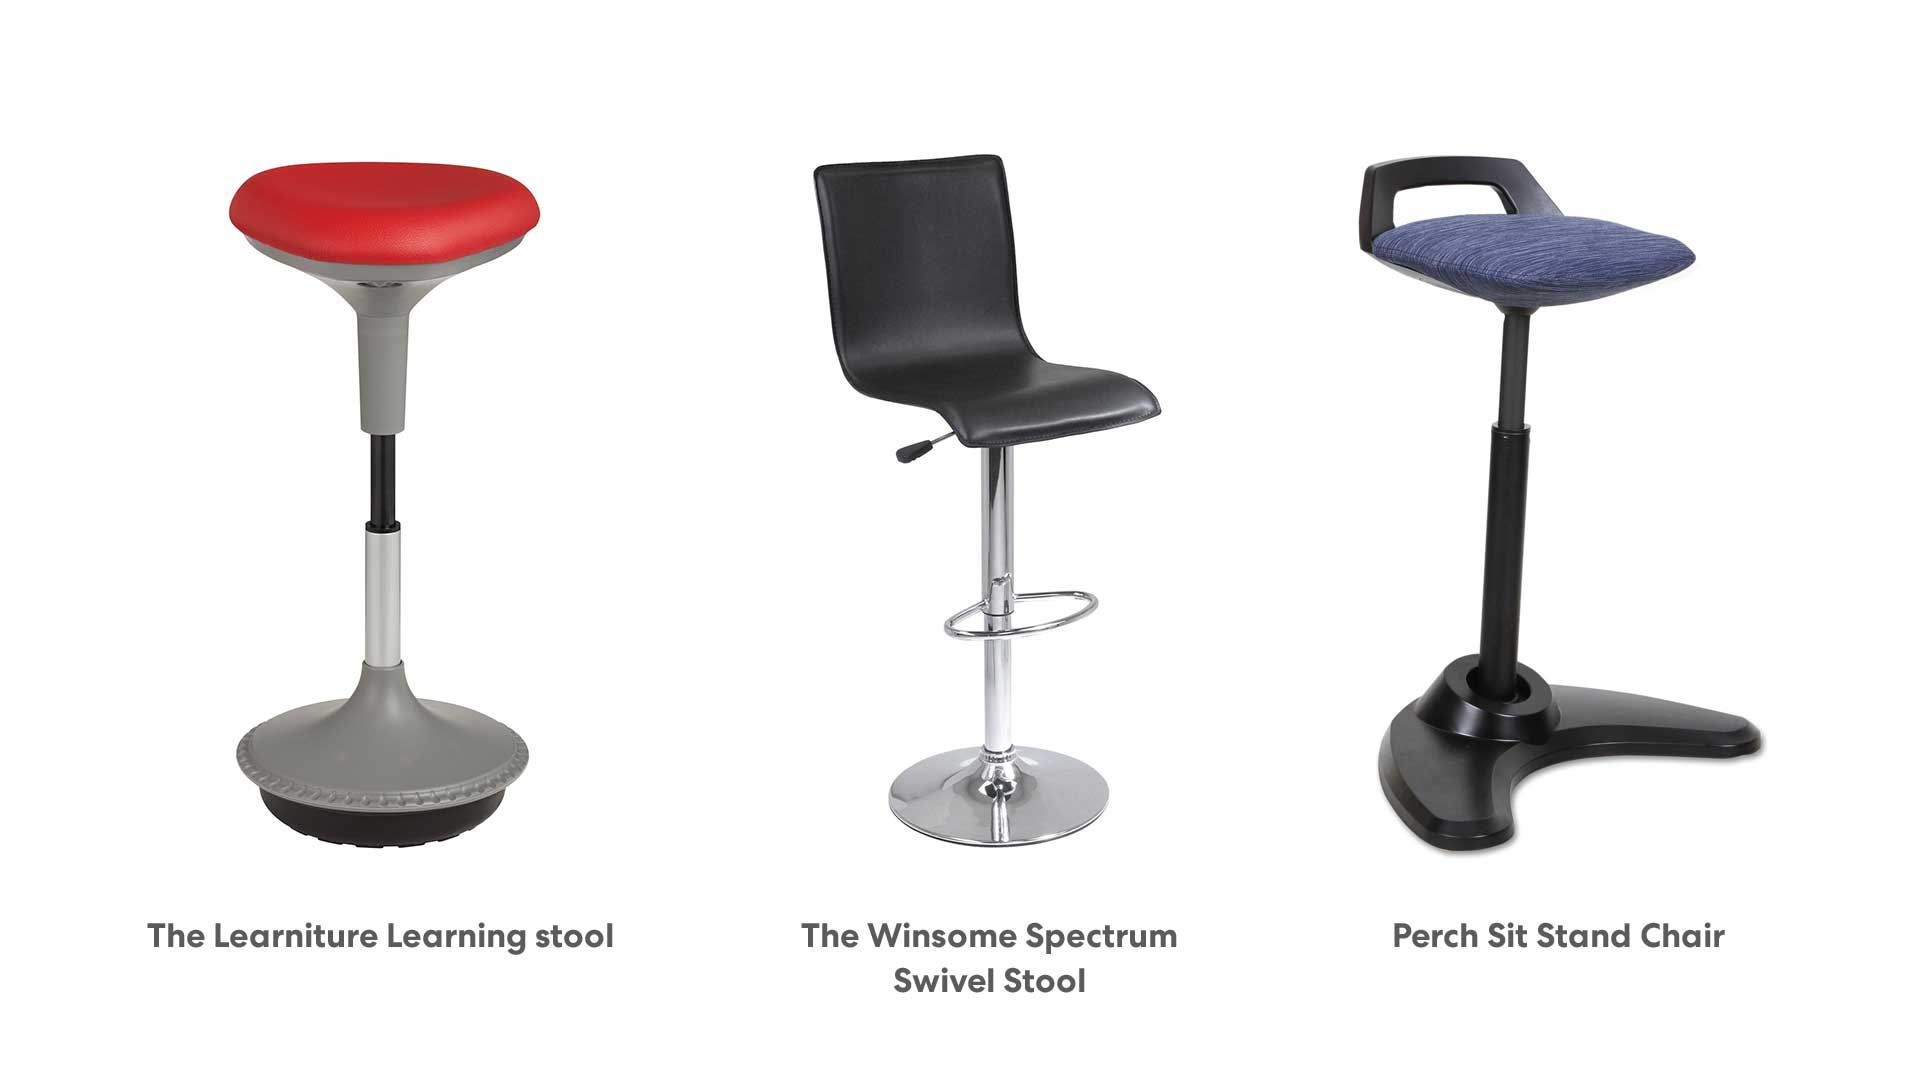 image relates to top 7 chairs